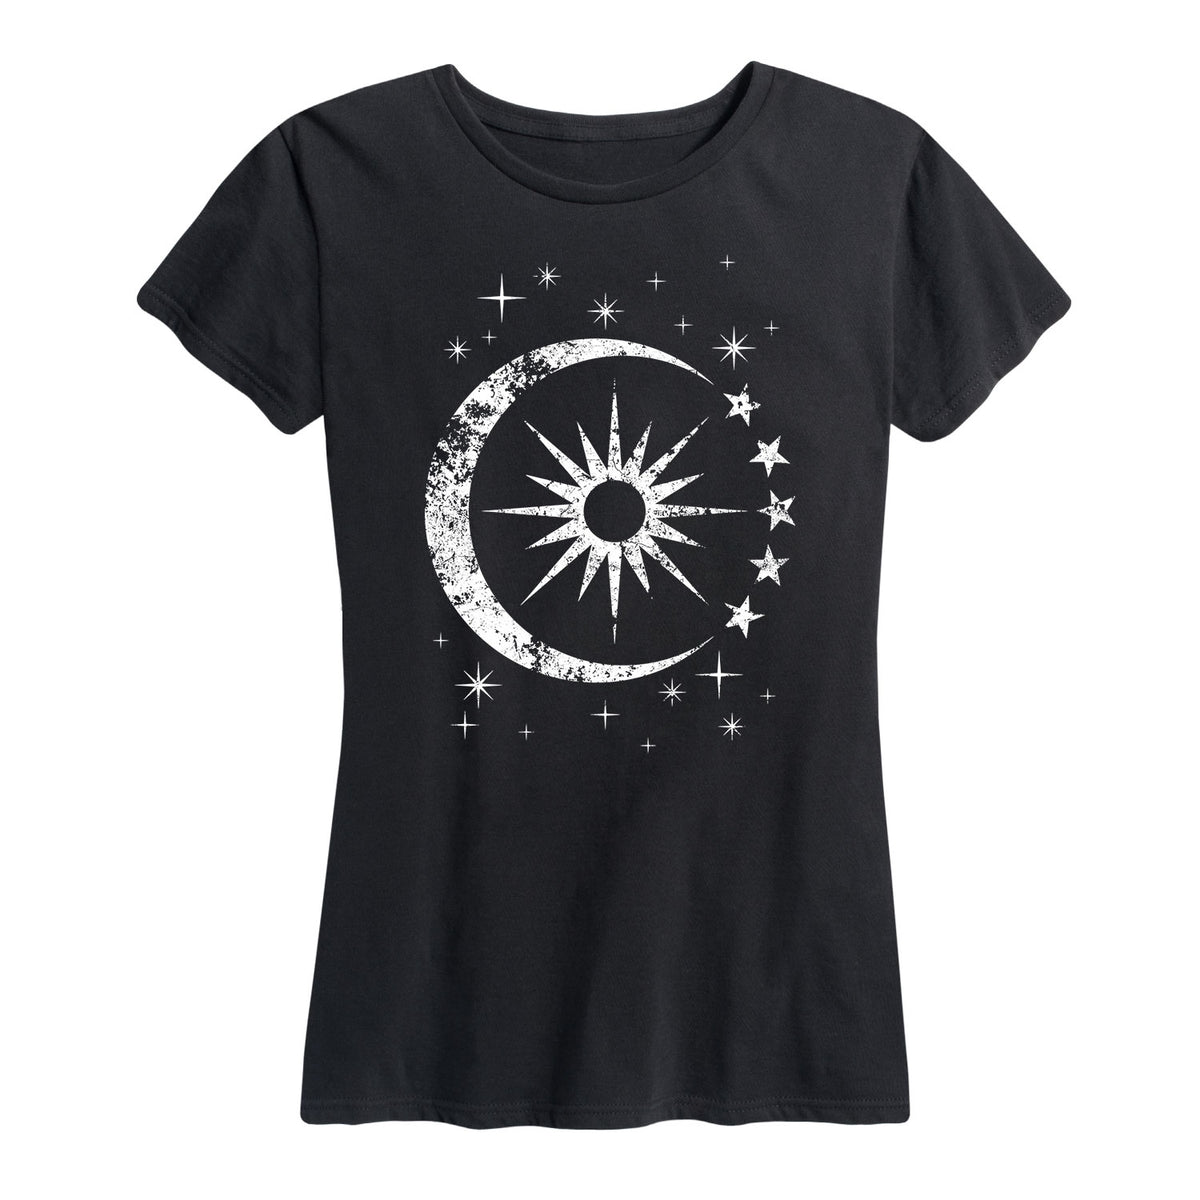 Celestial Sun Moon Scene - Women's Short Sleeve T-Shirt